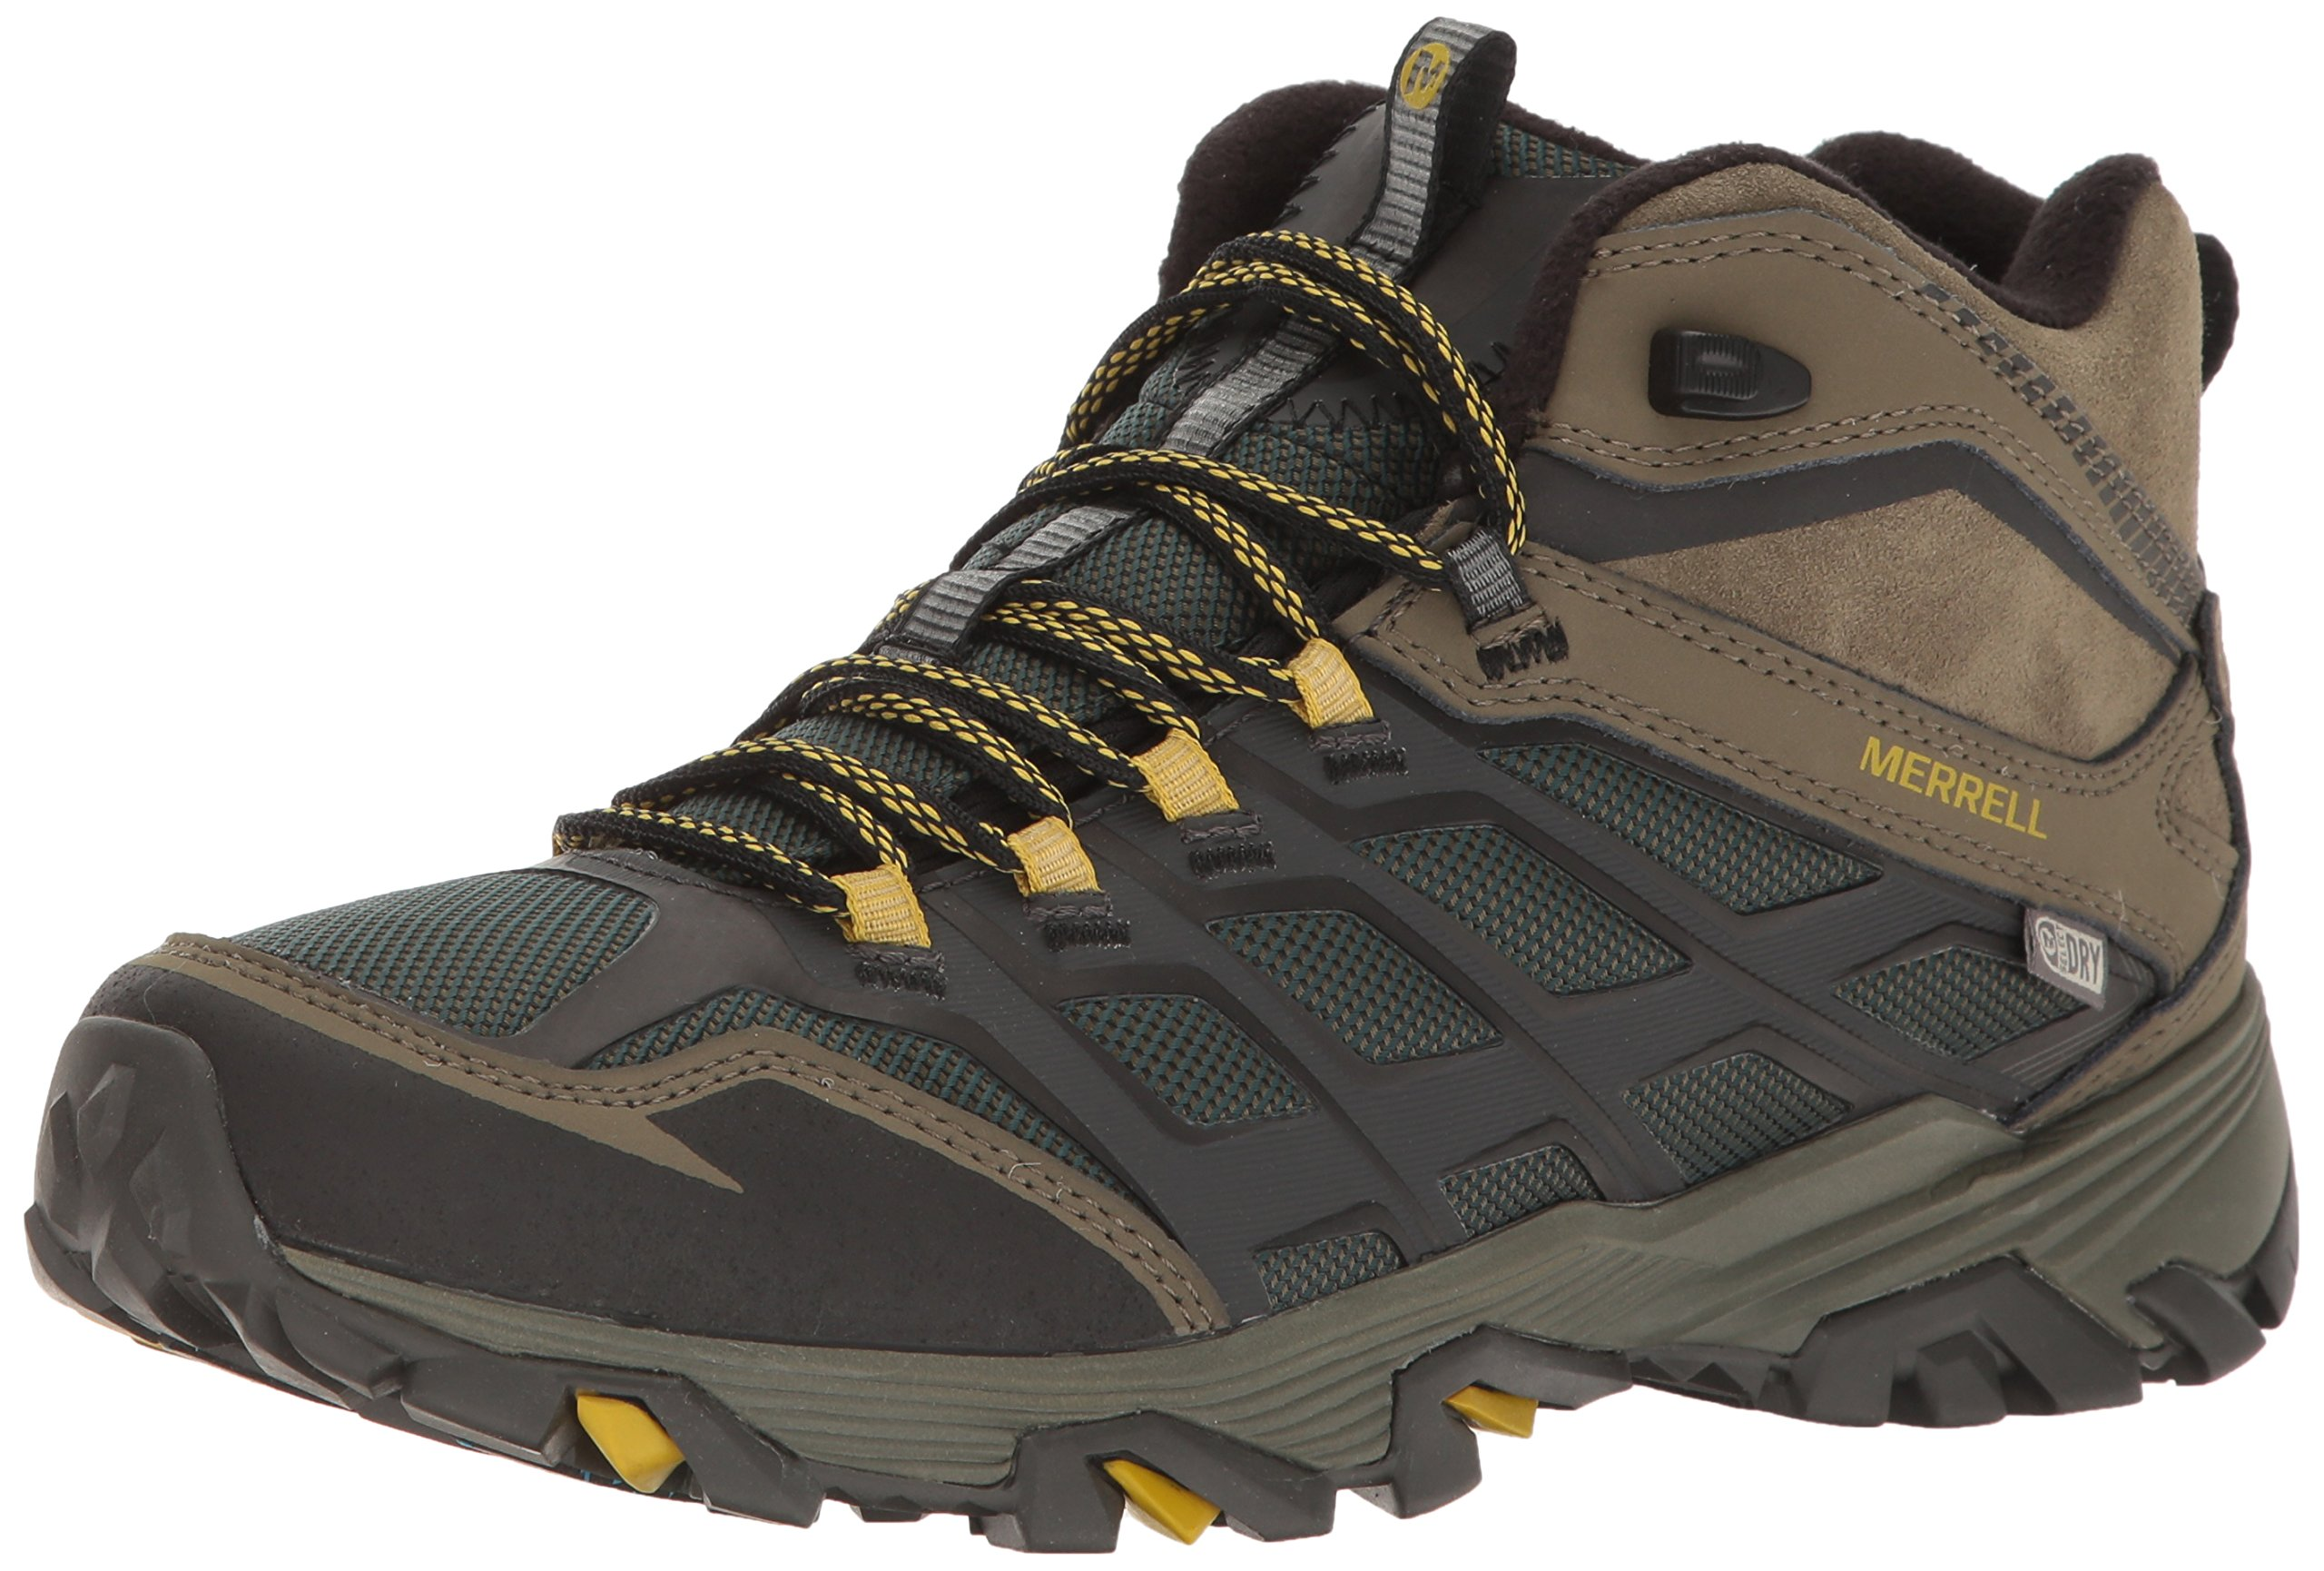 Merrell Men's Moab FST Ice+ Thermo Waterproof Winter Boot, Pine Grove/Olive, 9.5 M US